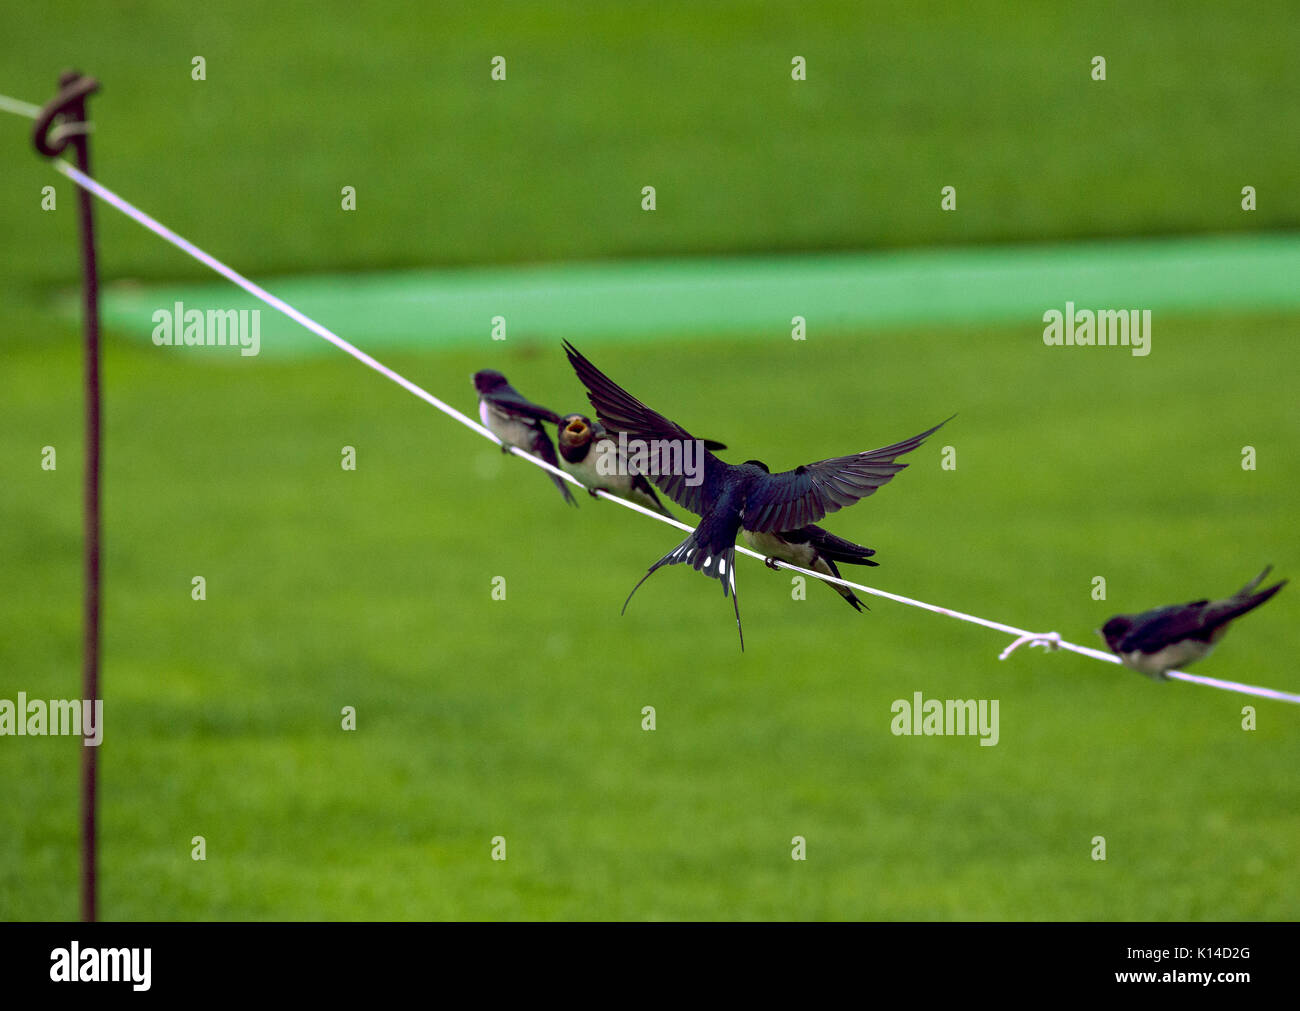 Swallow Hirundinidae  feeding young sitting on the ropes around a cricket ground - Stock Image